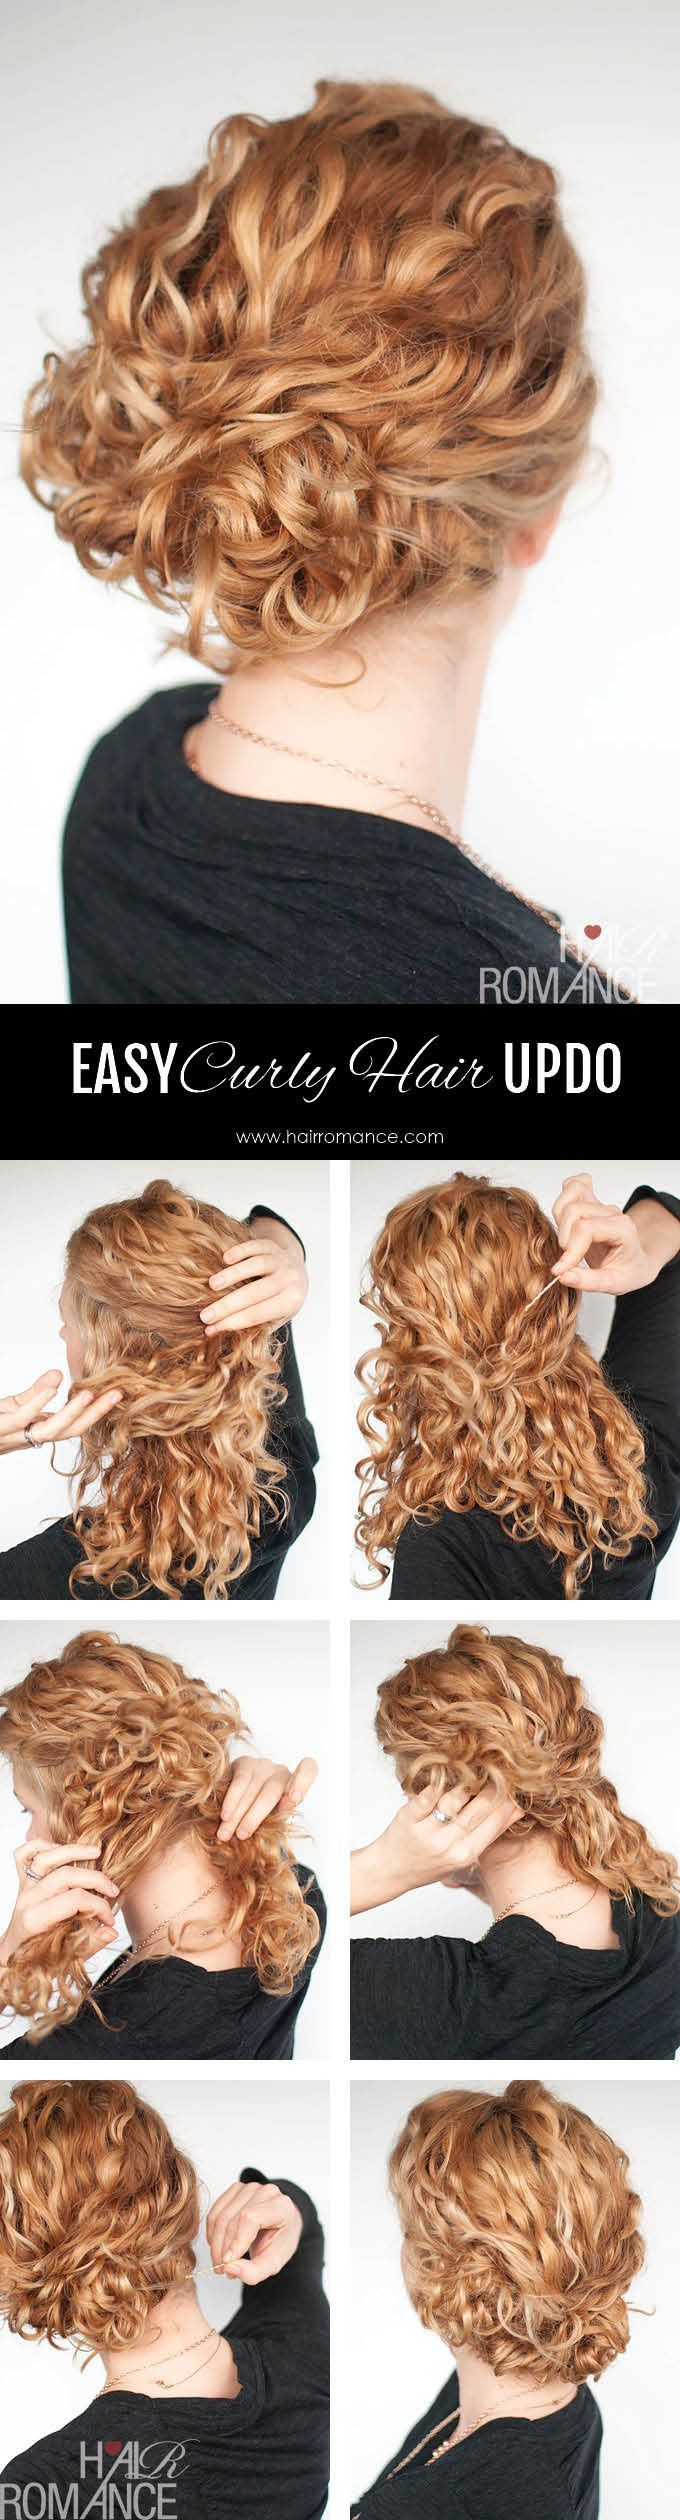 Super easy updo hairstyle tutorial for curly hair: Separate a section on top of your head down to around your temples. Give it a twist at the back and pin it in place with bobby pins. I like to leave it loose to keep some volume on top. Next take a section of curls near your left ear and twist them over and around the first bobby pins. Pin them in place with bobby pins. Depending on how much hair you have, split the rest of your hair in 2-4 sections. Twist each section up into a loose bun…